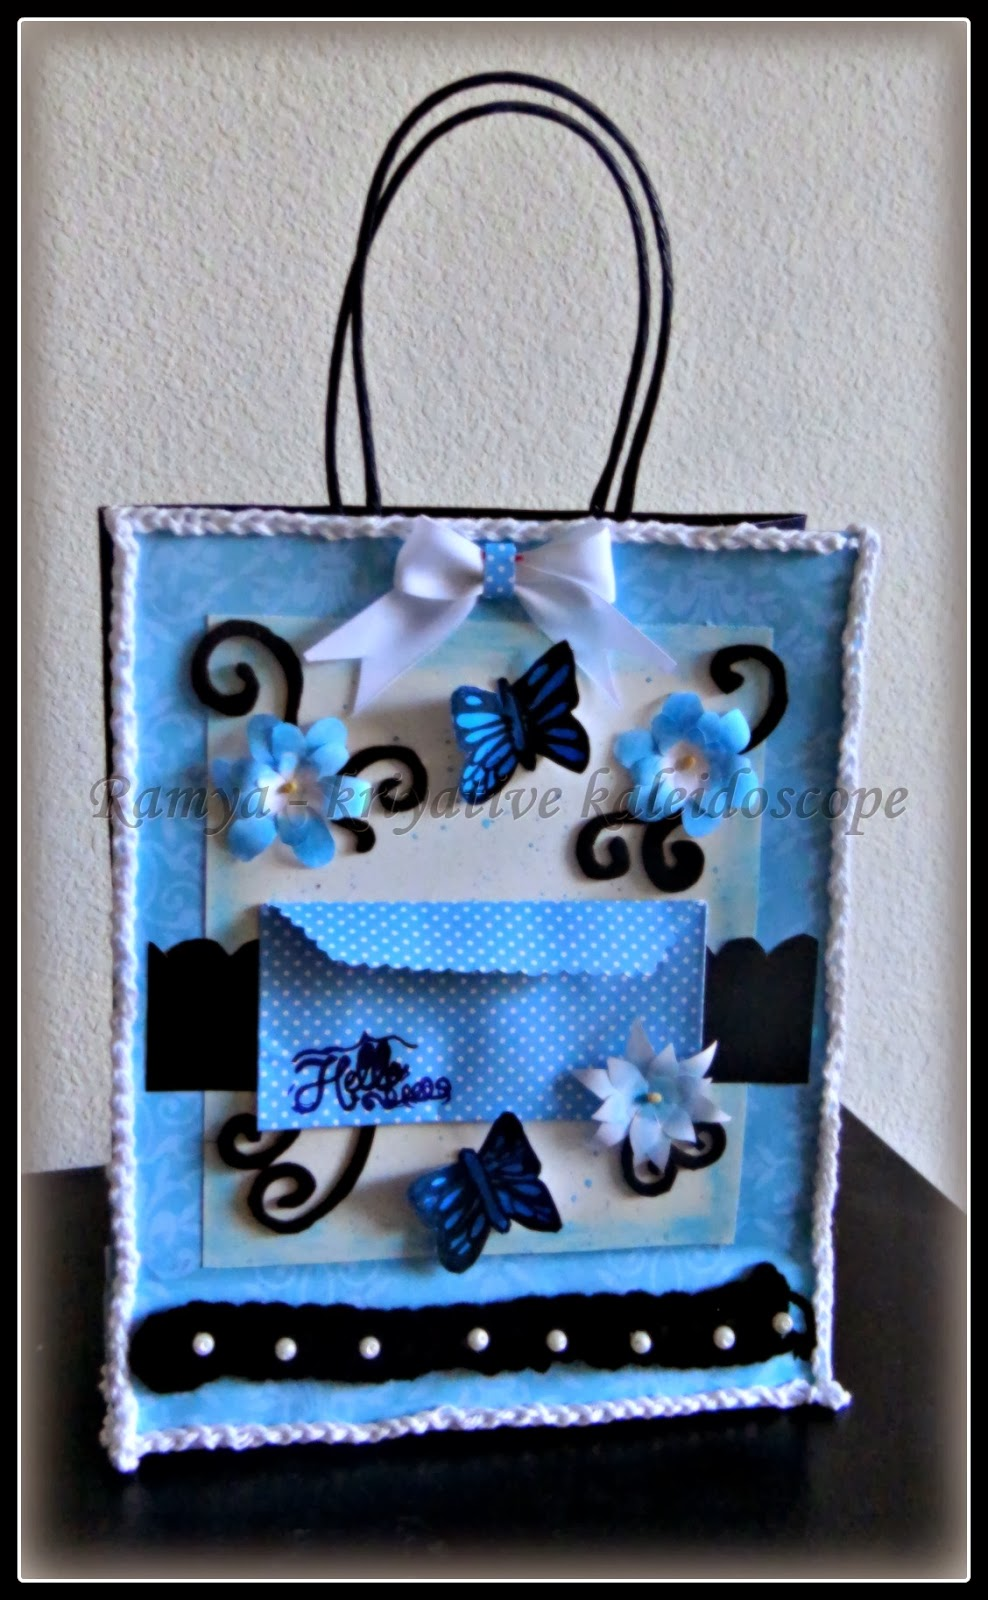 Kriya tive kaleidoscope hand decorated gift bag with a cute envelope now when i saw the theme of many challenges being decorated gift bag i decided to recycle that paper bag into a gift bag negle Gallery